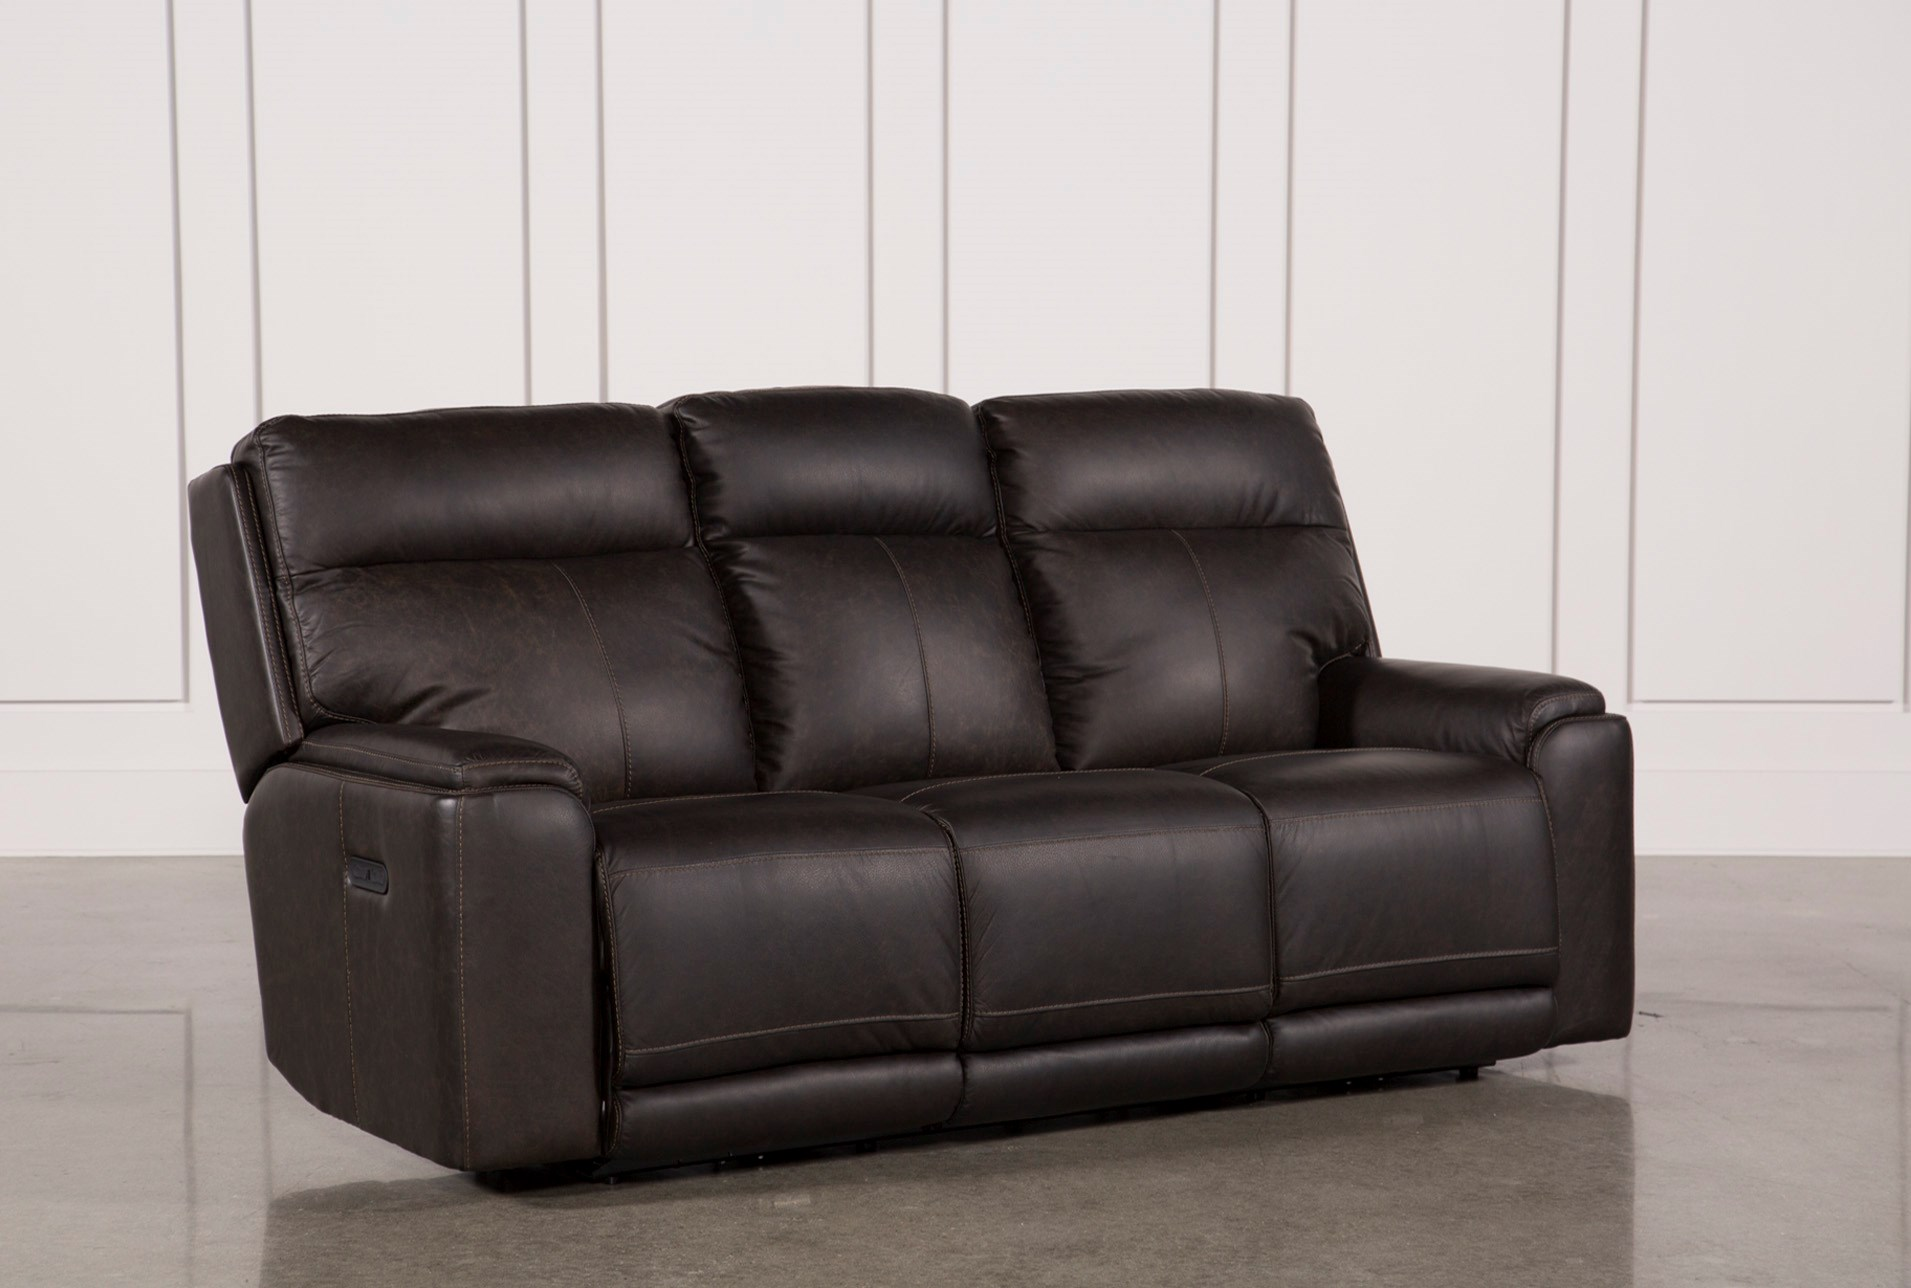 reclining sofa chair. sinjin leather power reclining sofa w/power headrest (qty: 1) has been  successfully added to your cart. reclining sofa chair i